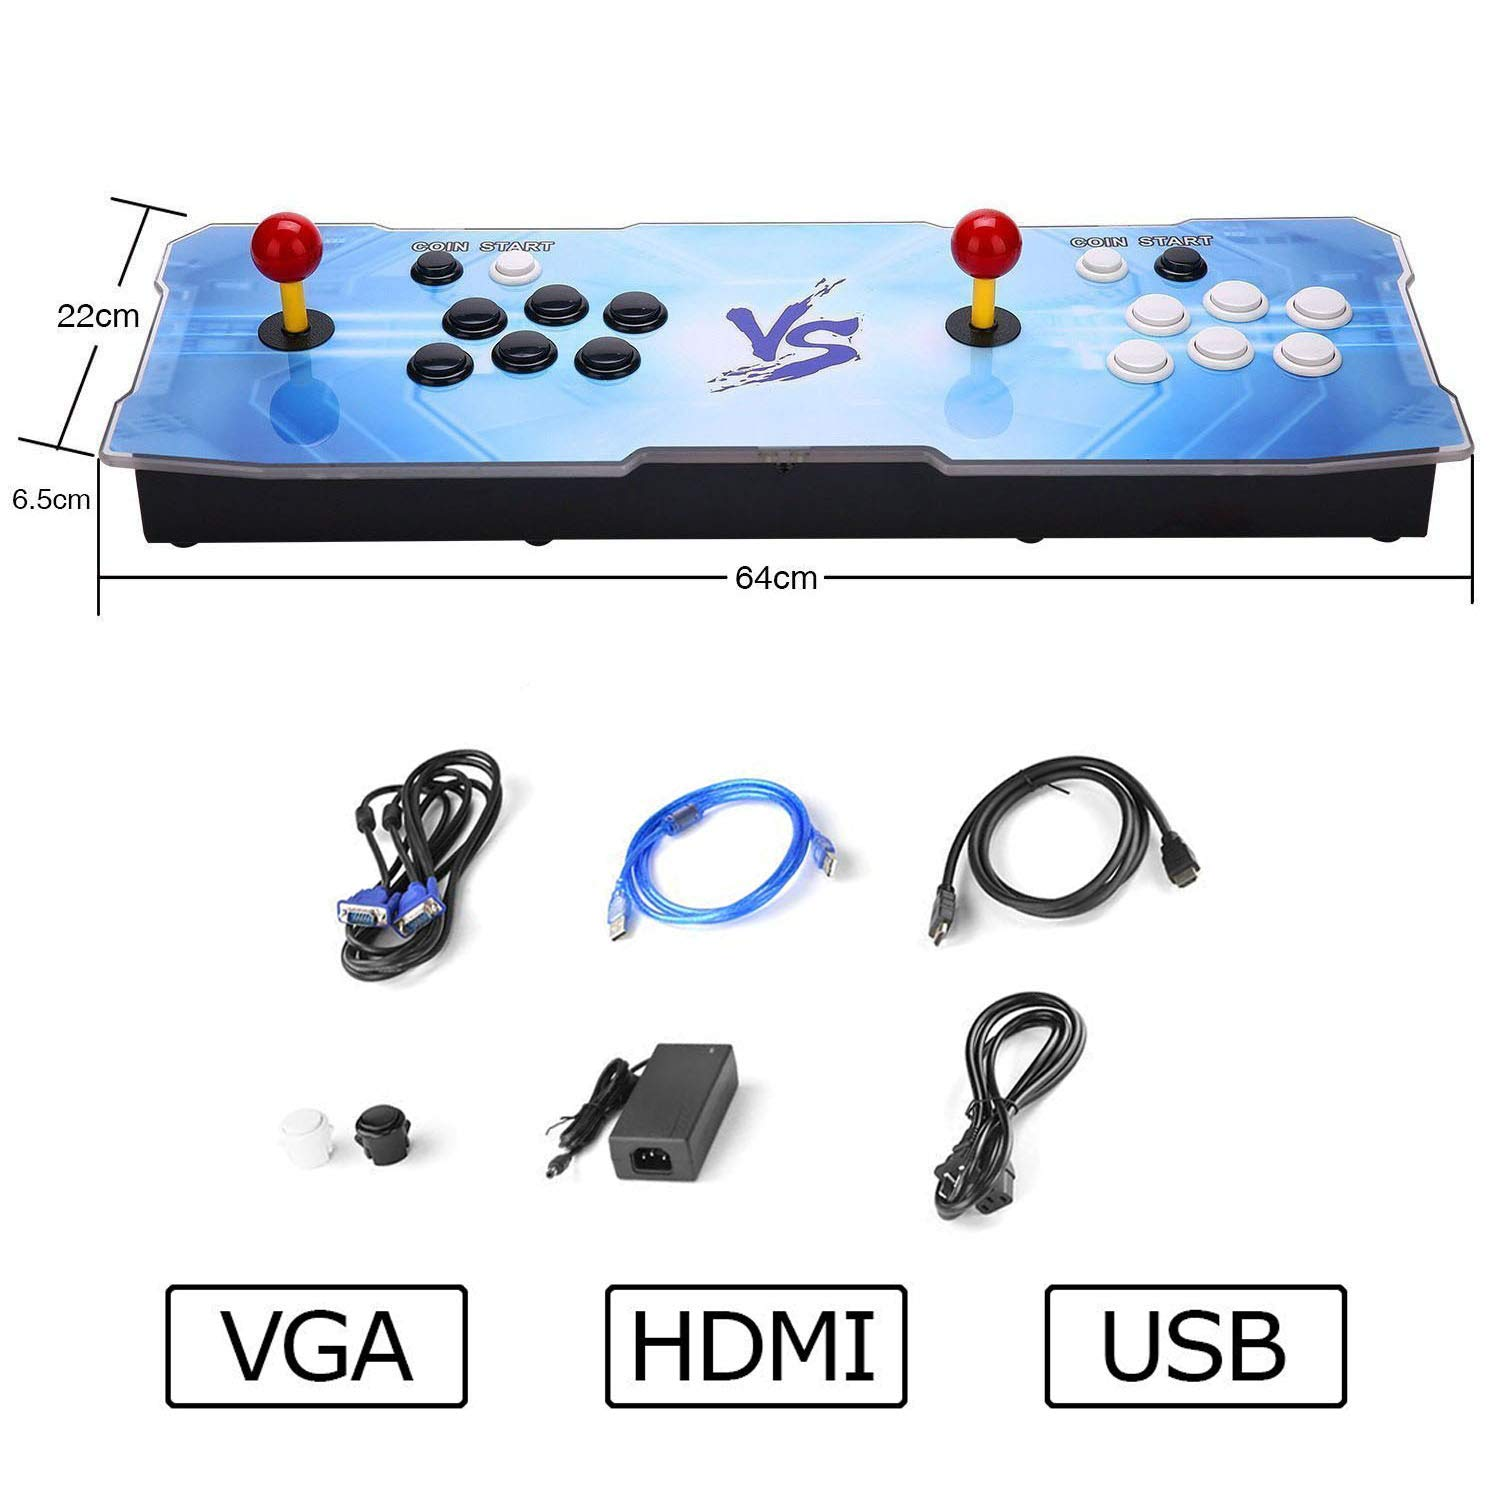 HAAMIIQII 3D Pandora Key 2363 Retro Arcade Game Console | Support 3D Games | Add More Games | Full HD (1920x1080) Video | 2 Player Game Controls | Support 4 Players | HDMI/VGA/USB/AUX Audio Output by HAAMIIQII (Image #6)